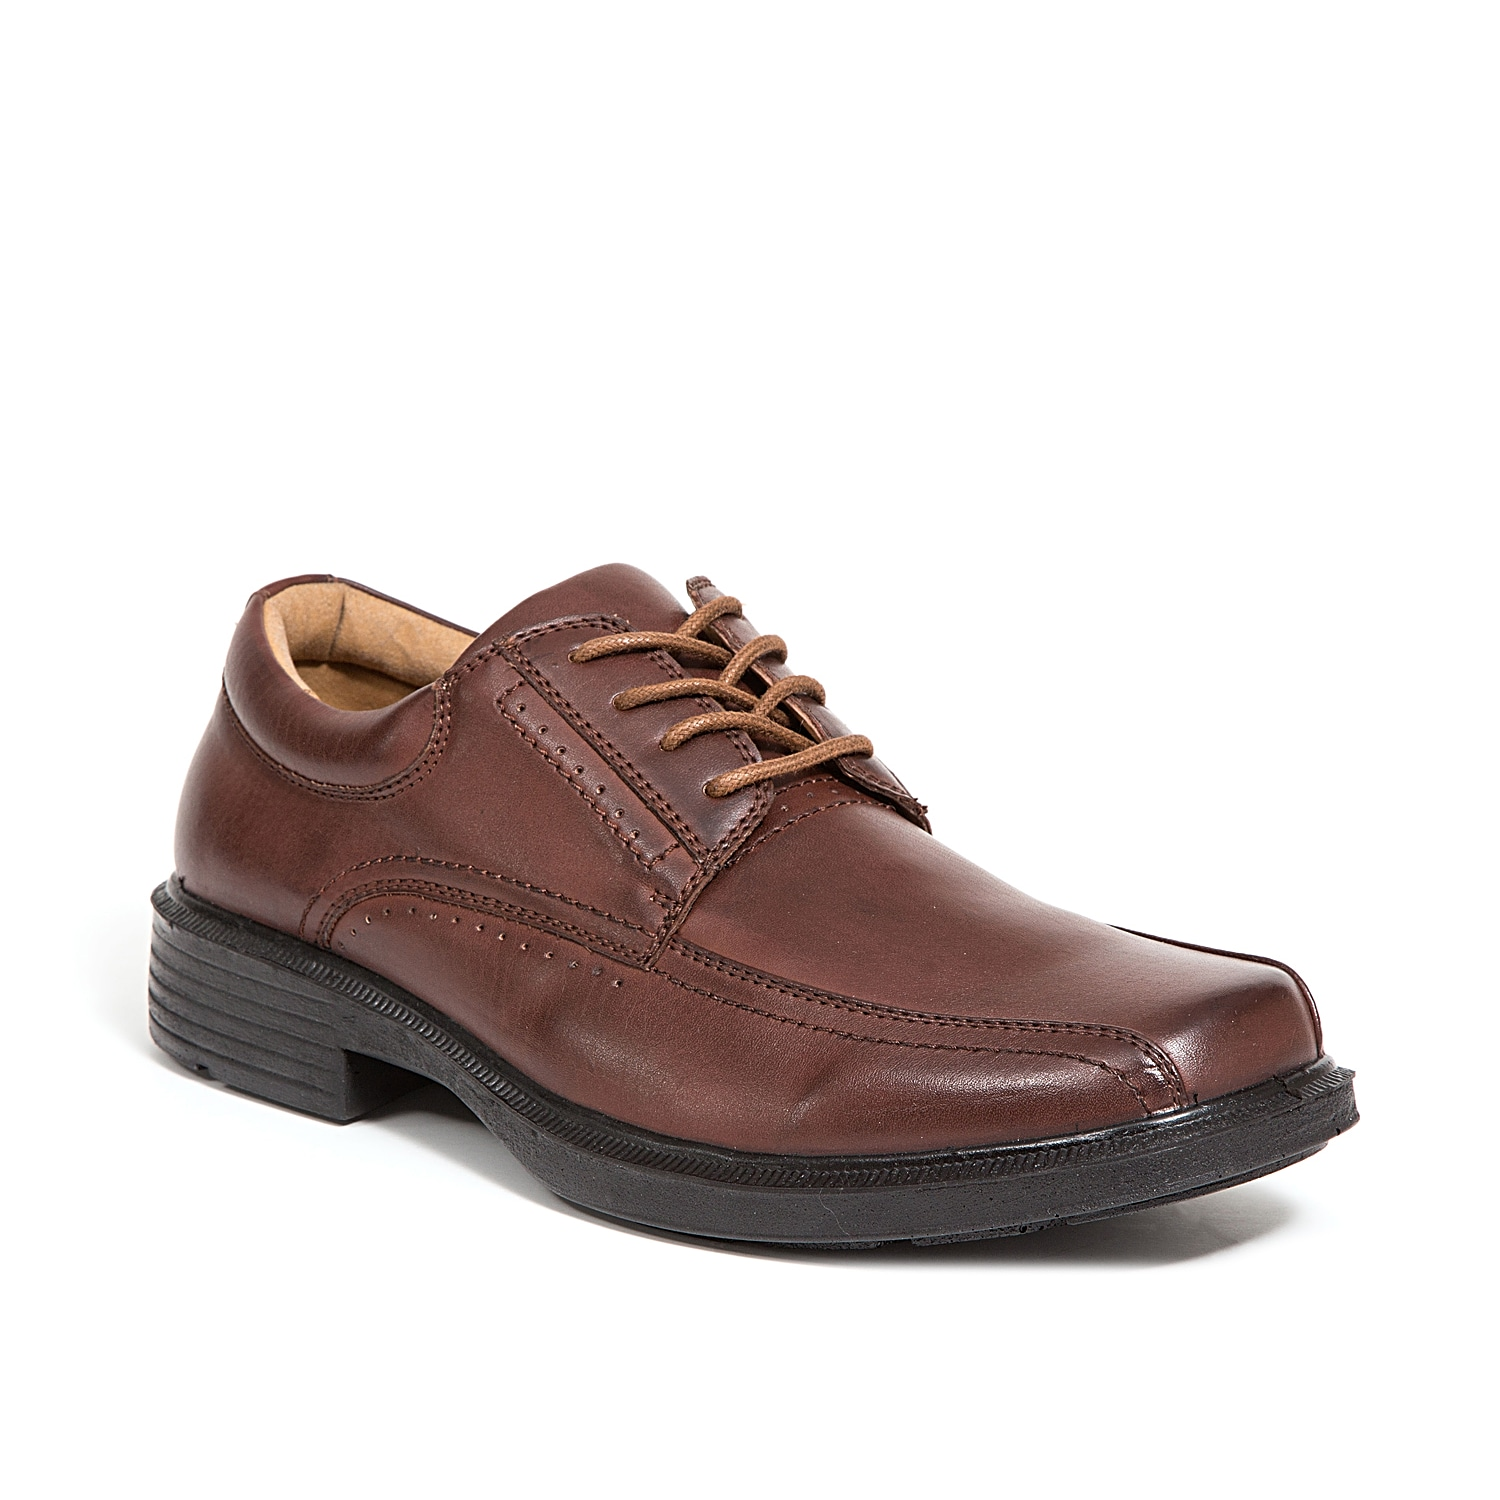 Put your best-looking foot forward in the Williamsburg oxford from Deer Stags. With quality craftsmanship and comfort features, this lace-up shoe will become a favorite in no time!